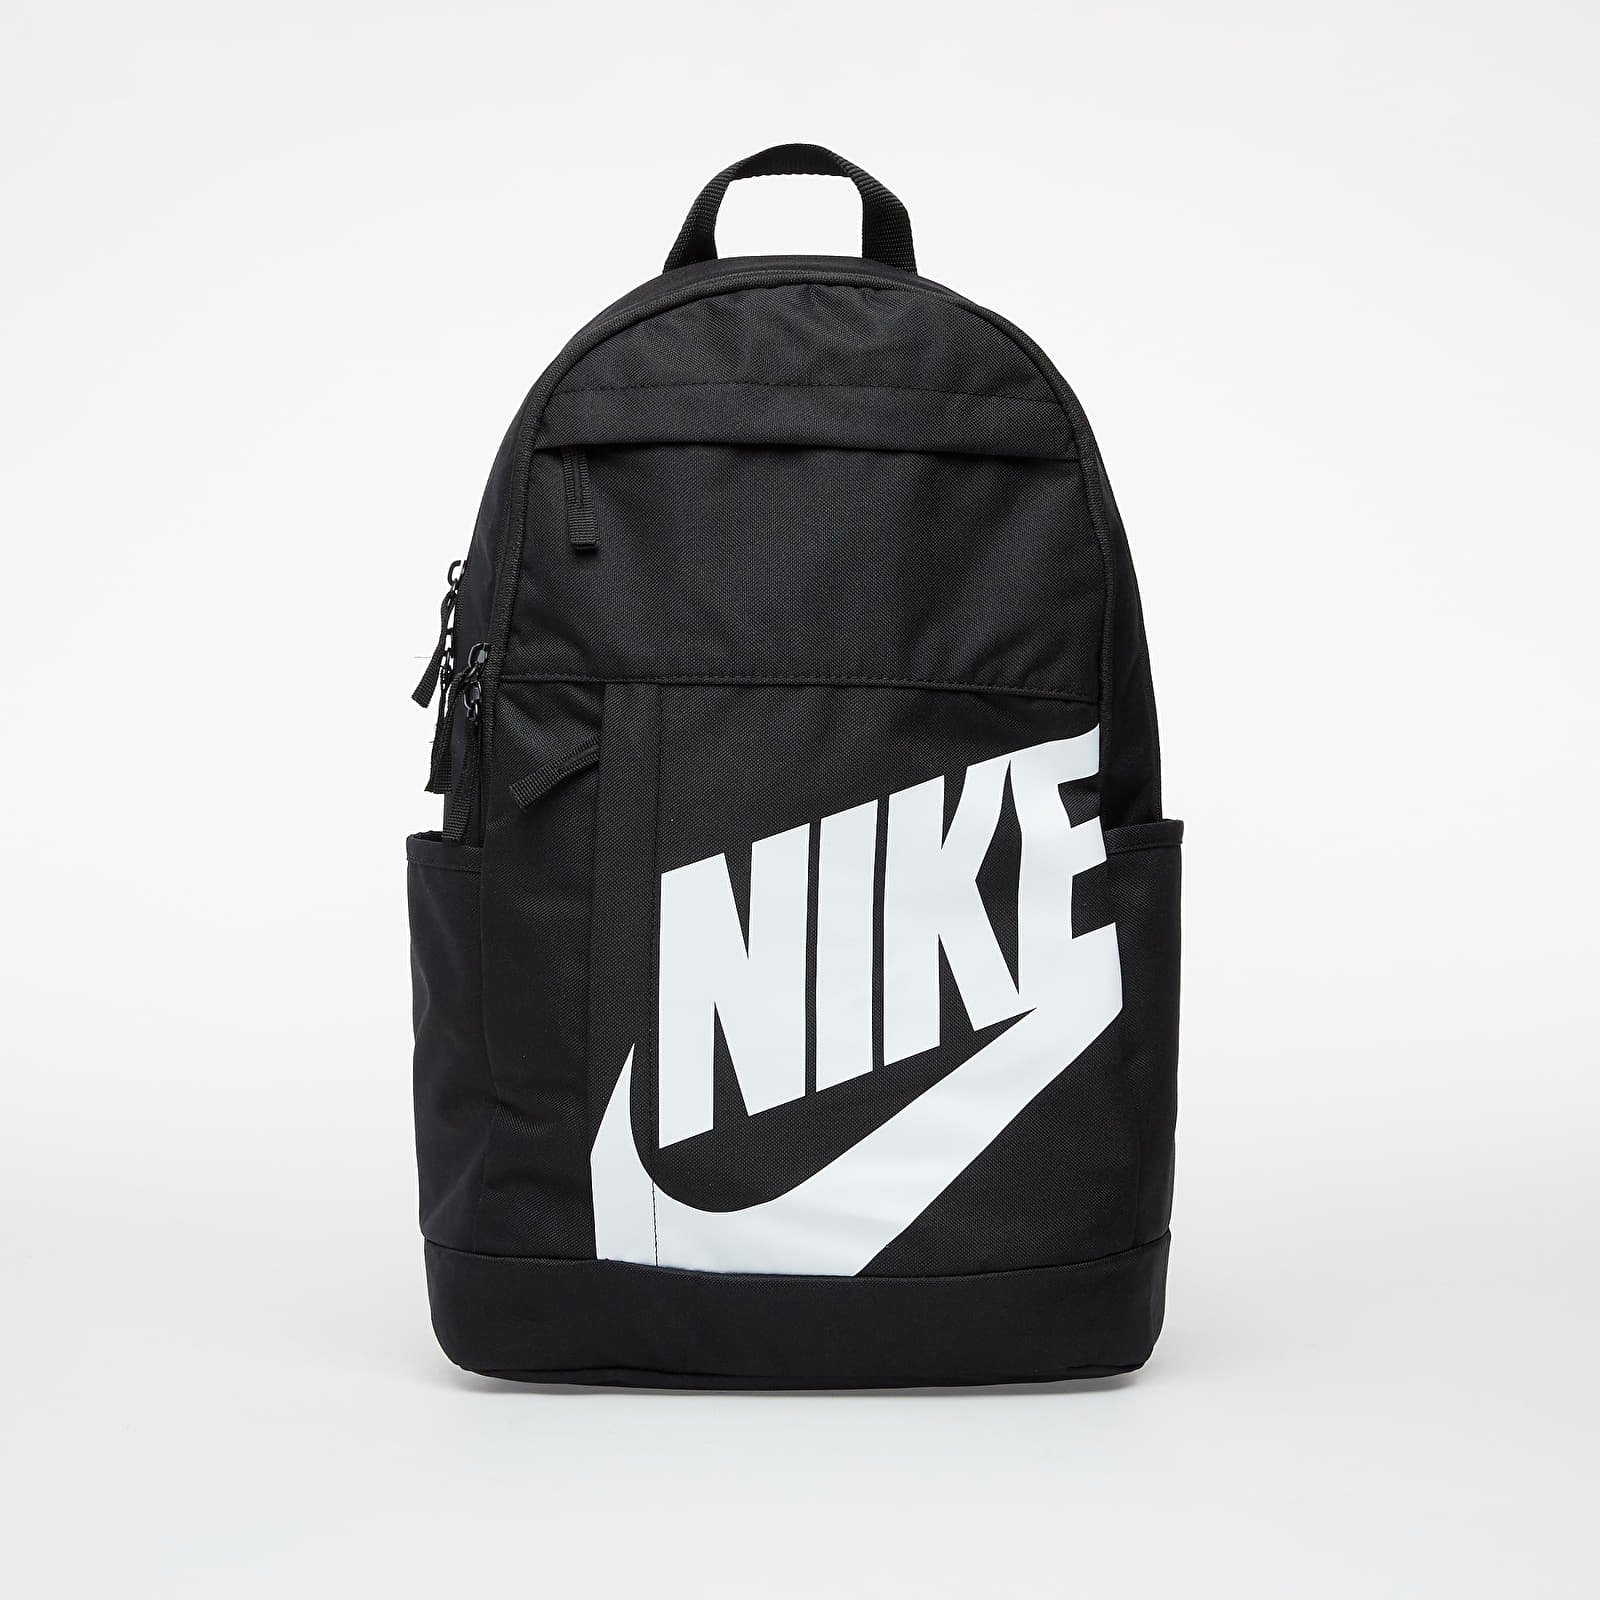 Ruksaci Nike Elemental Backpack Black/ Black/ White